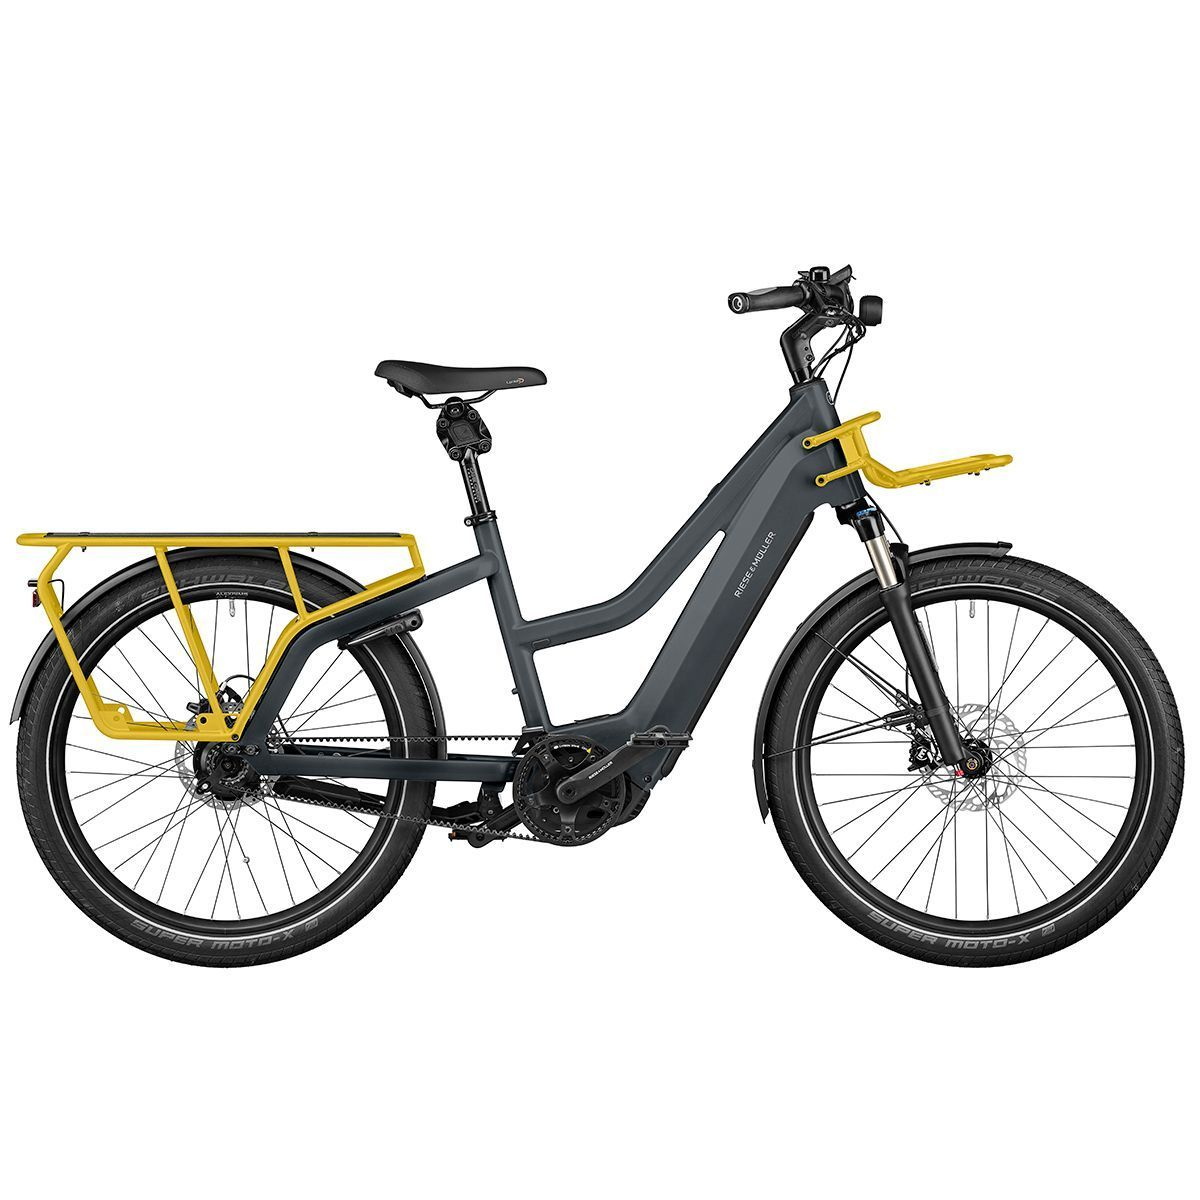 Riese & Muller Multicharger Mixte GT Rohloff HS-Oregon E-Bikes